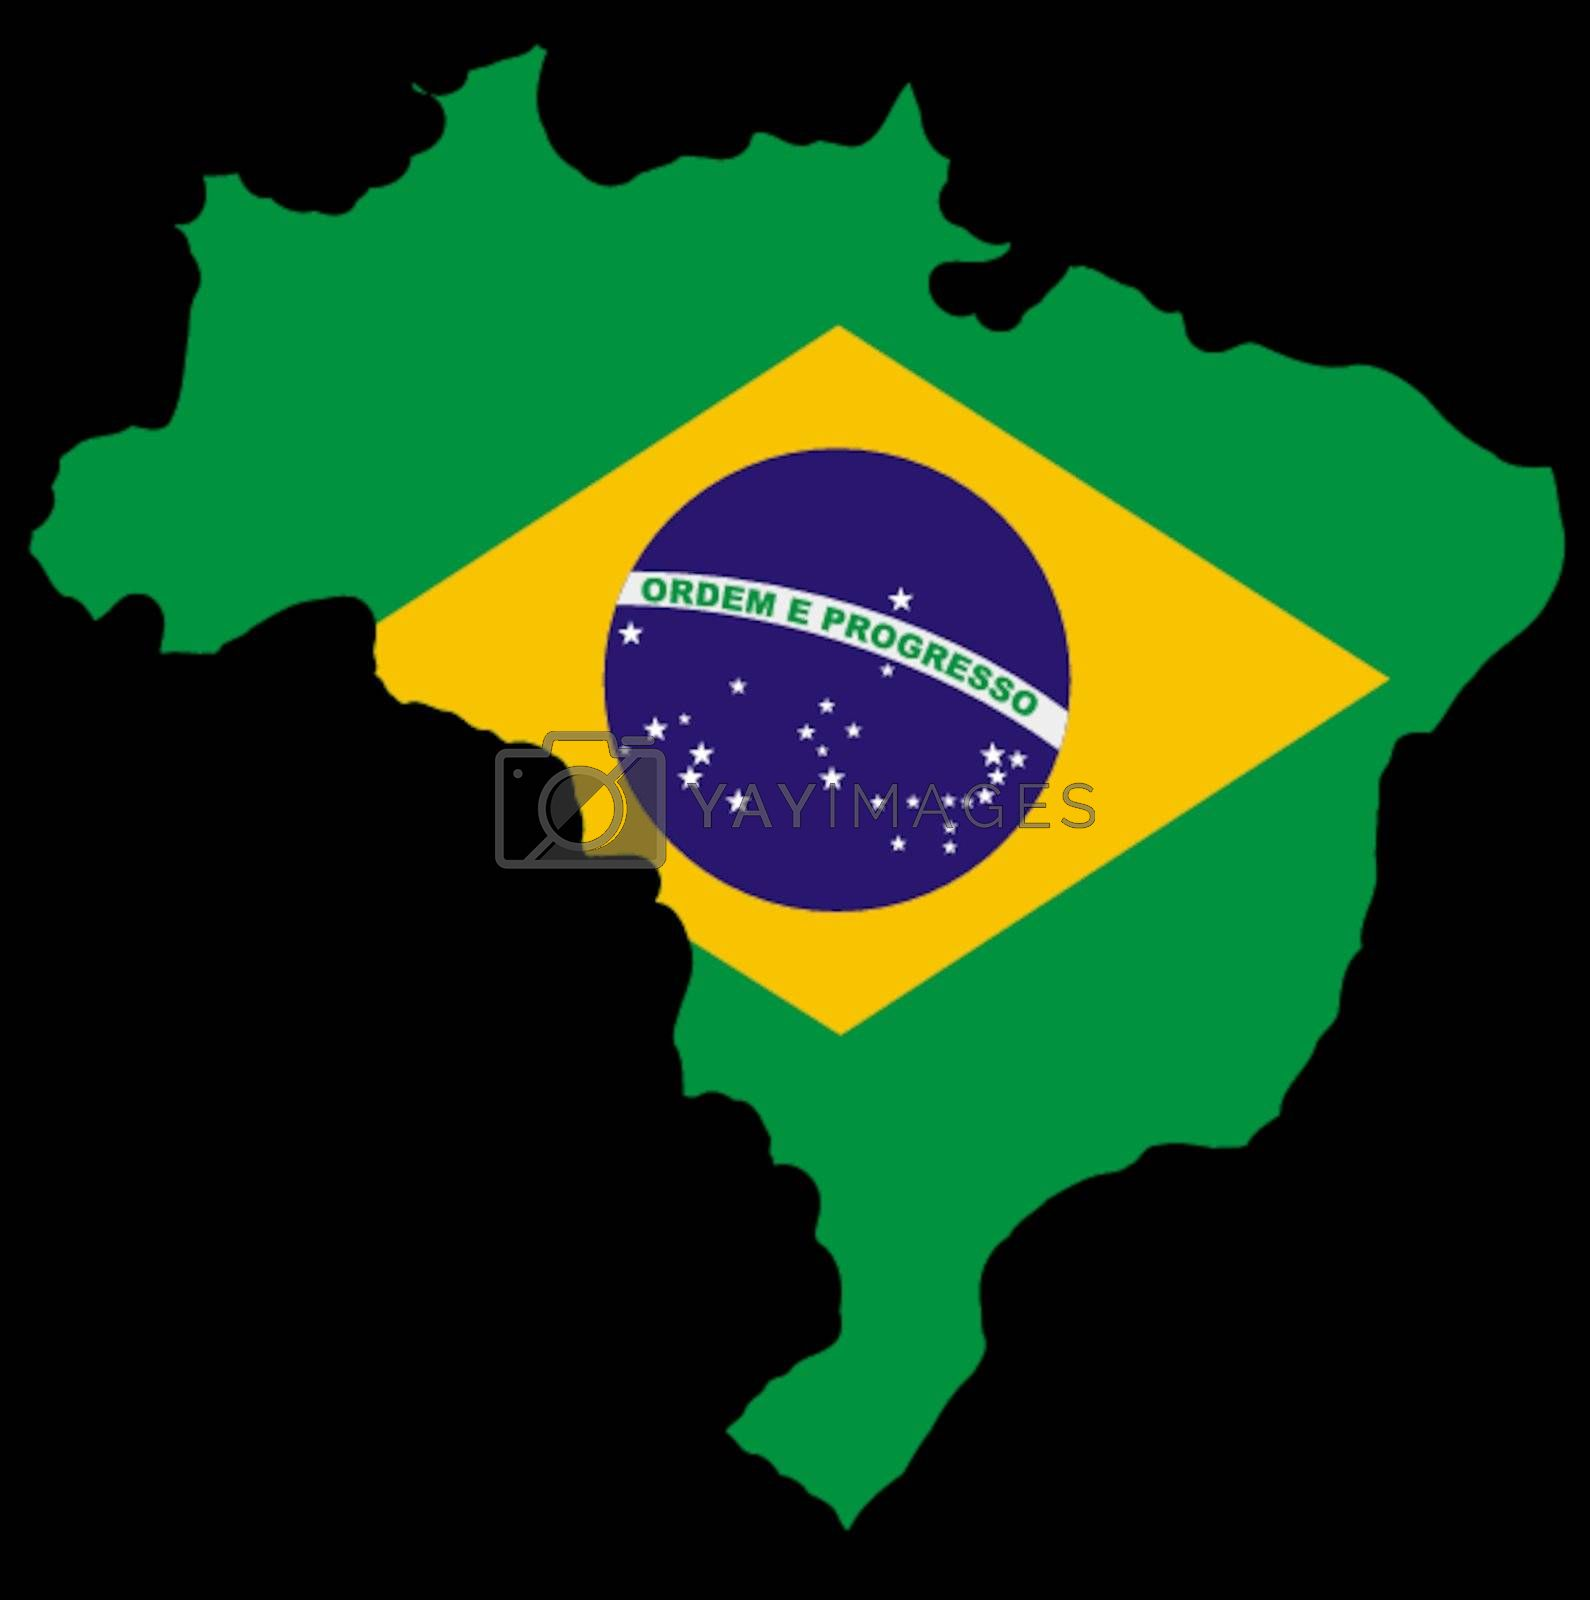 Illustration of flag in map of Brazil